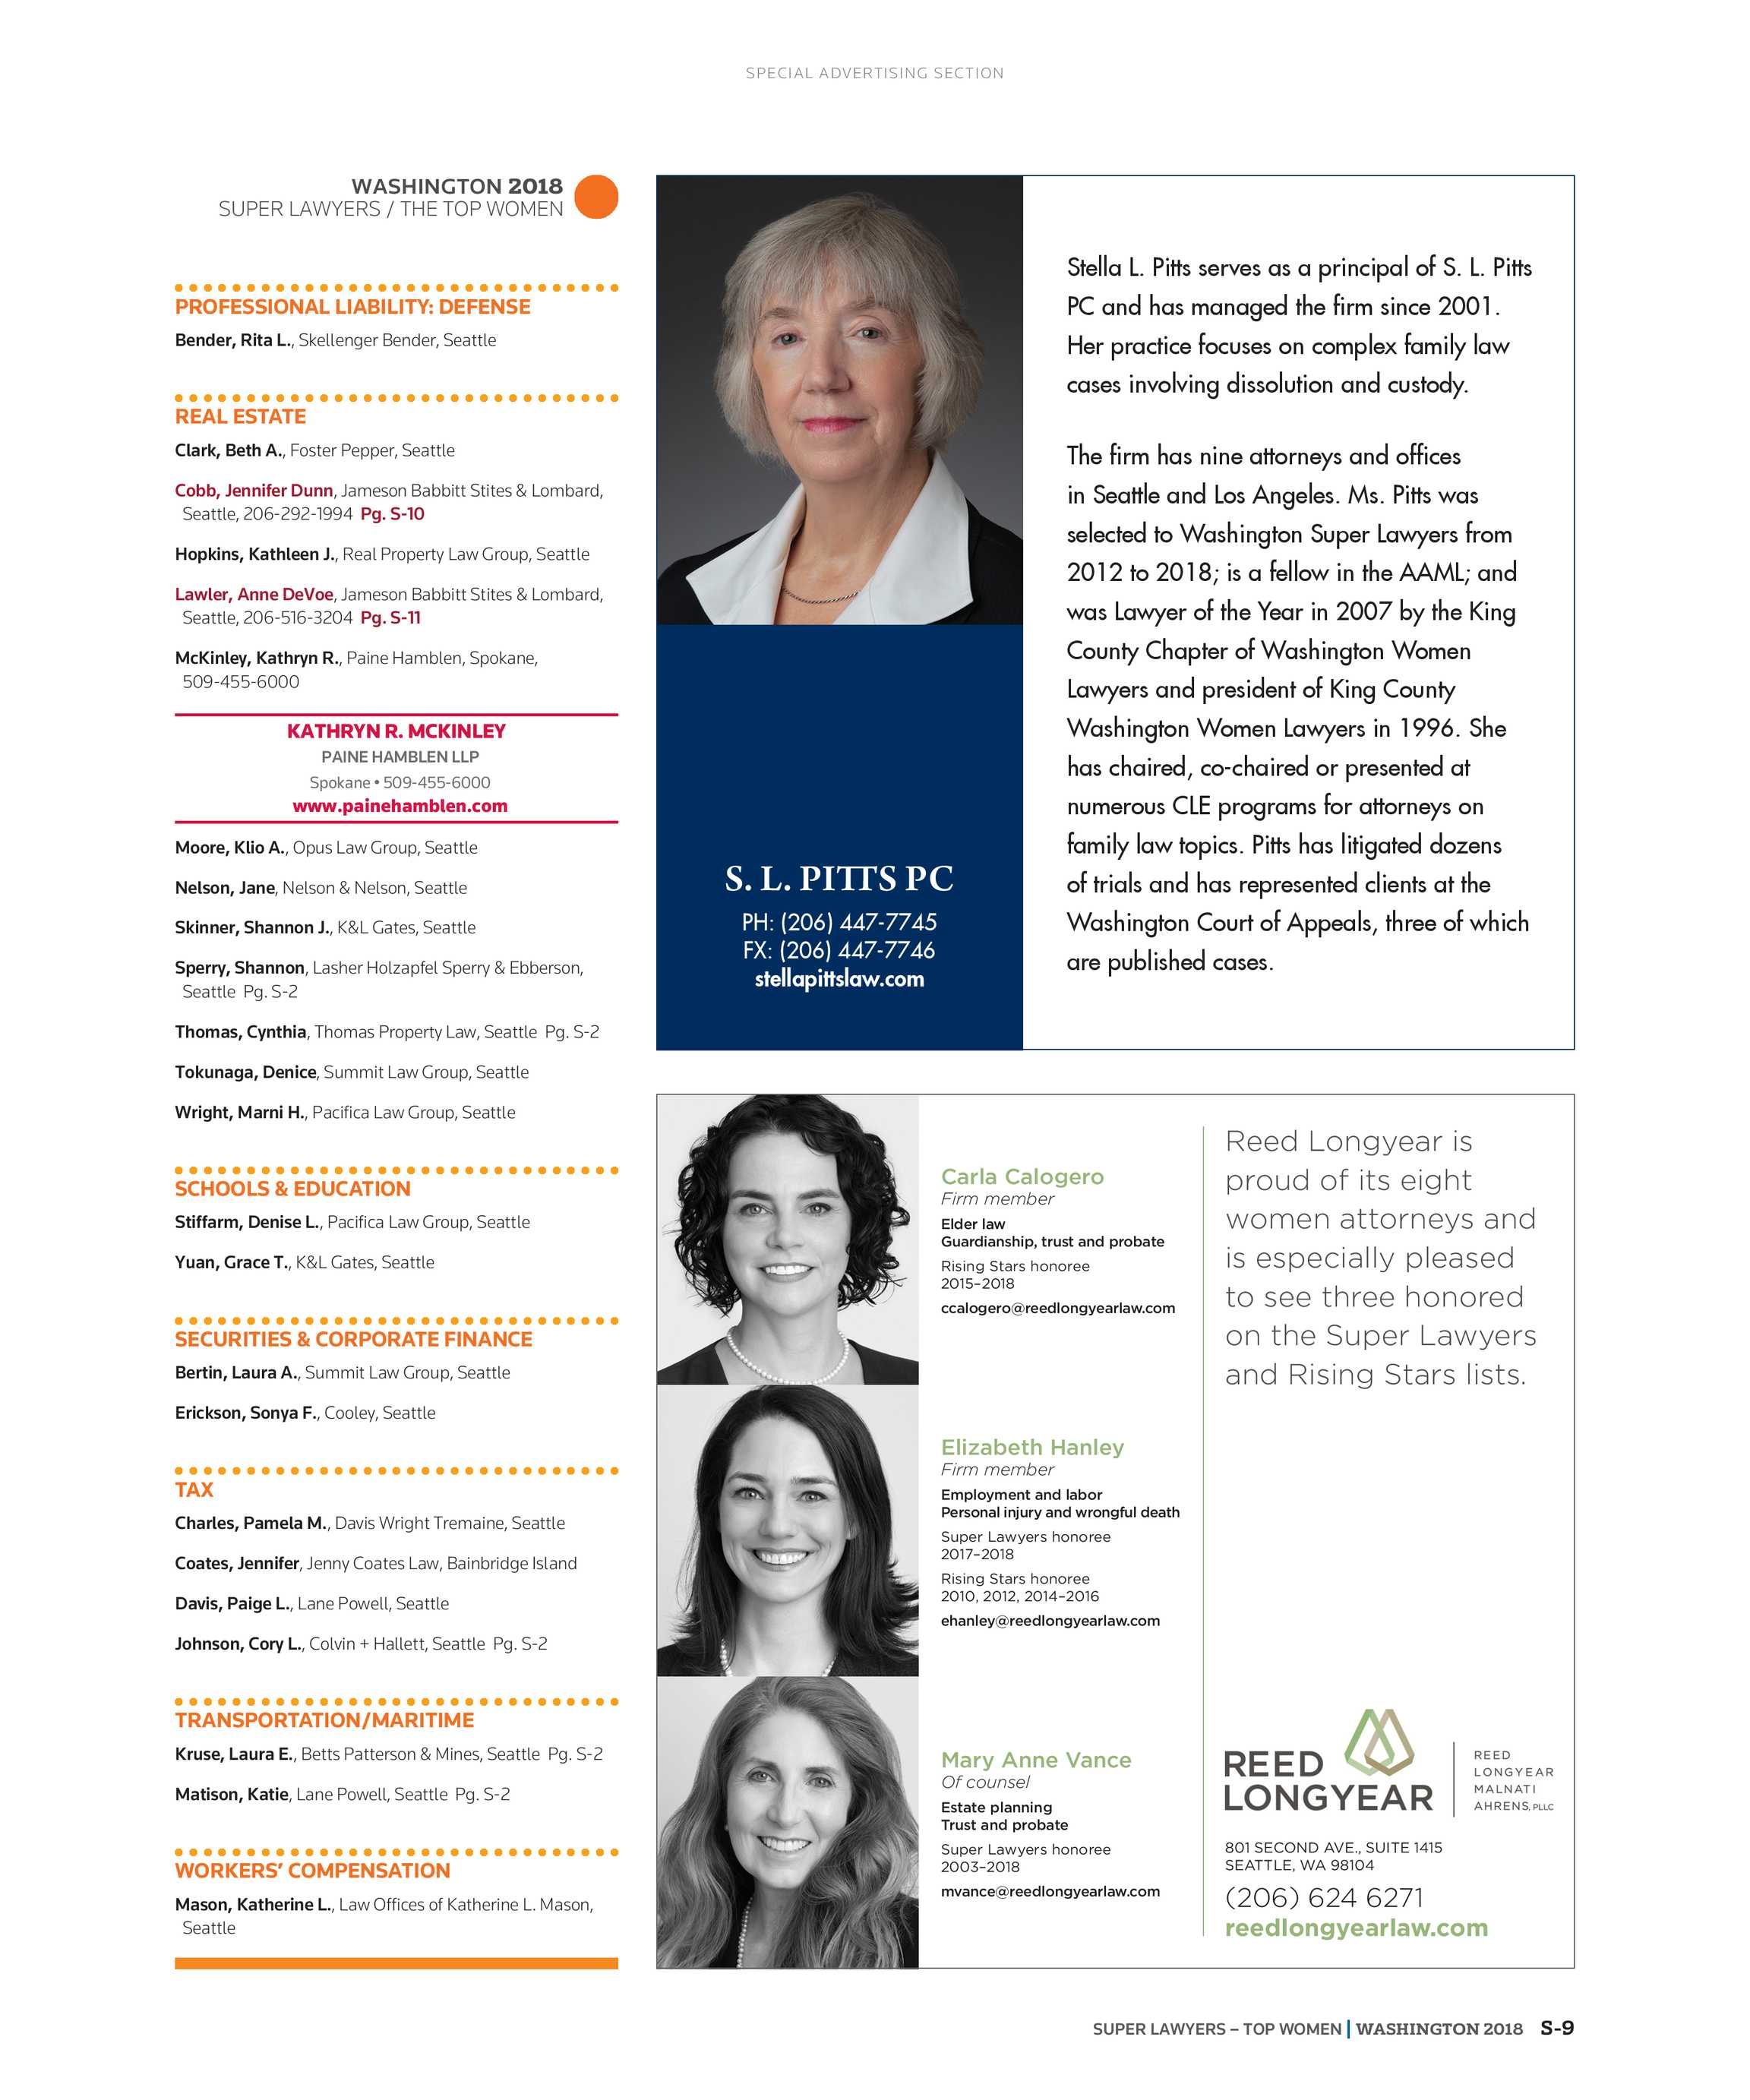 Super Lawyers - The Top Women Attorneys in Washington 2018 - page S-9